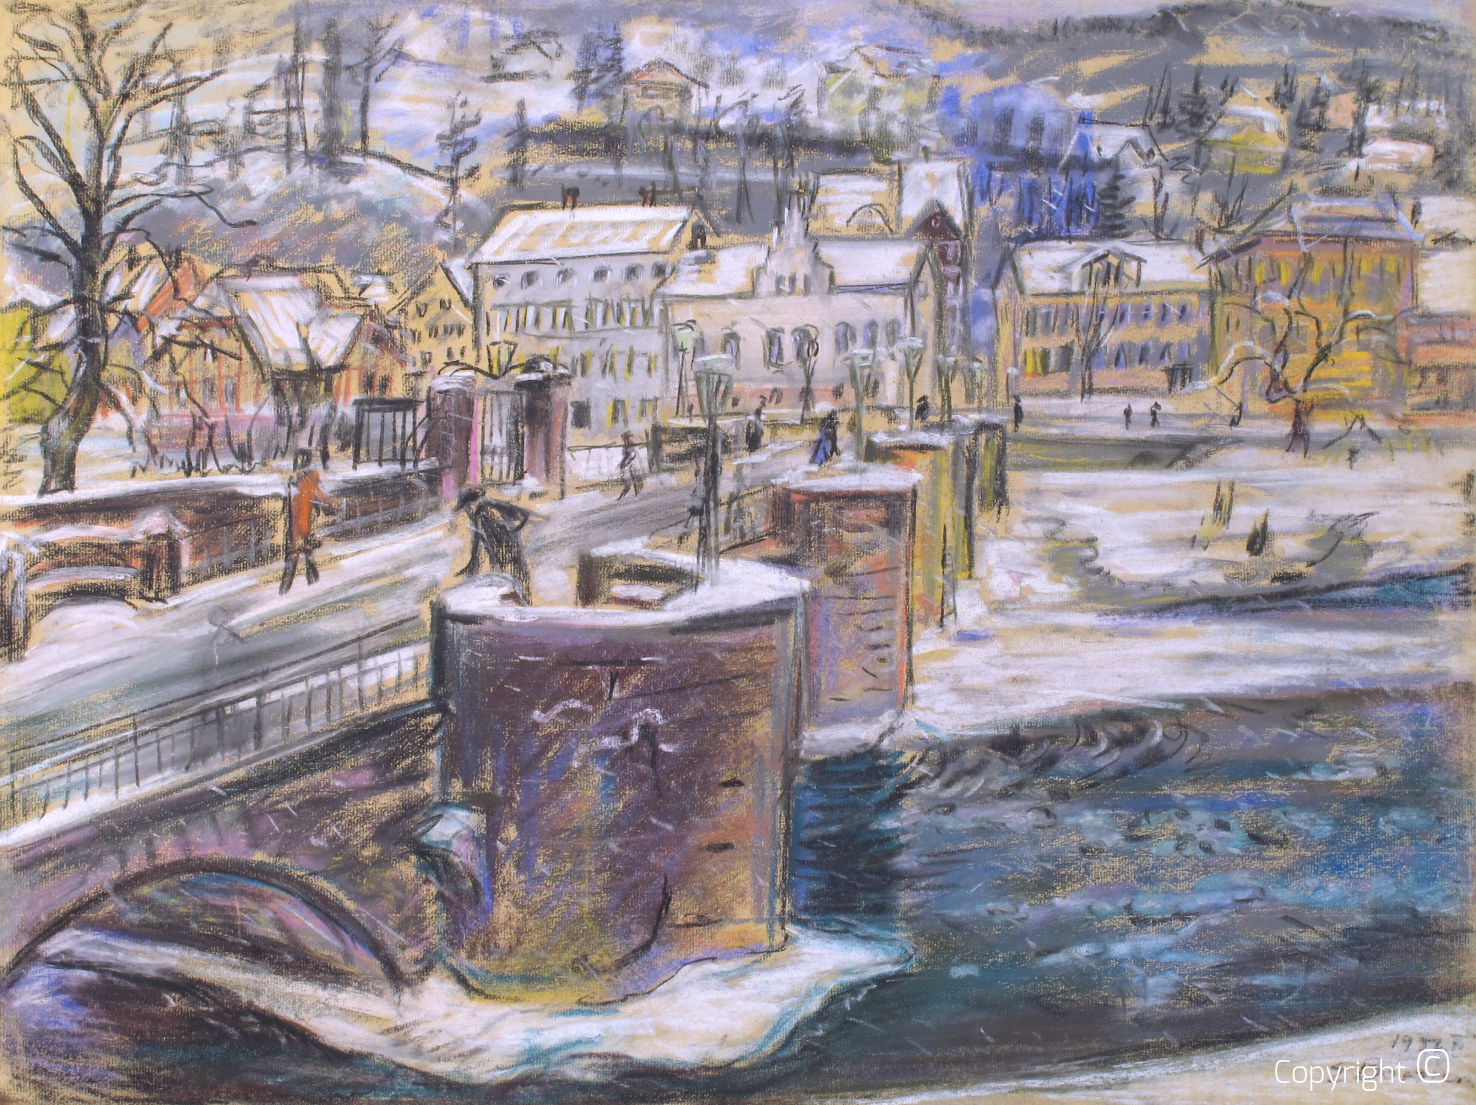 Catalog of Works N ° 1457 - Werra Bridge in Hannoversch Münden in Winter, 1956